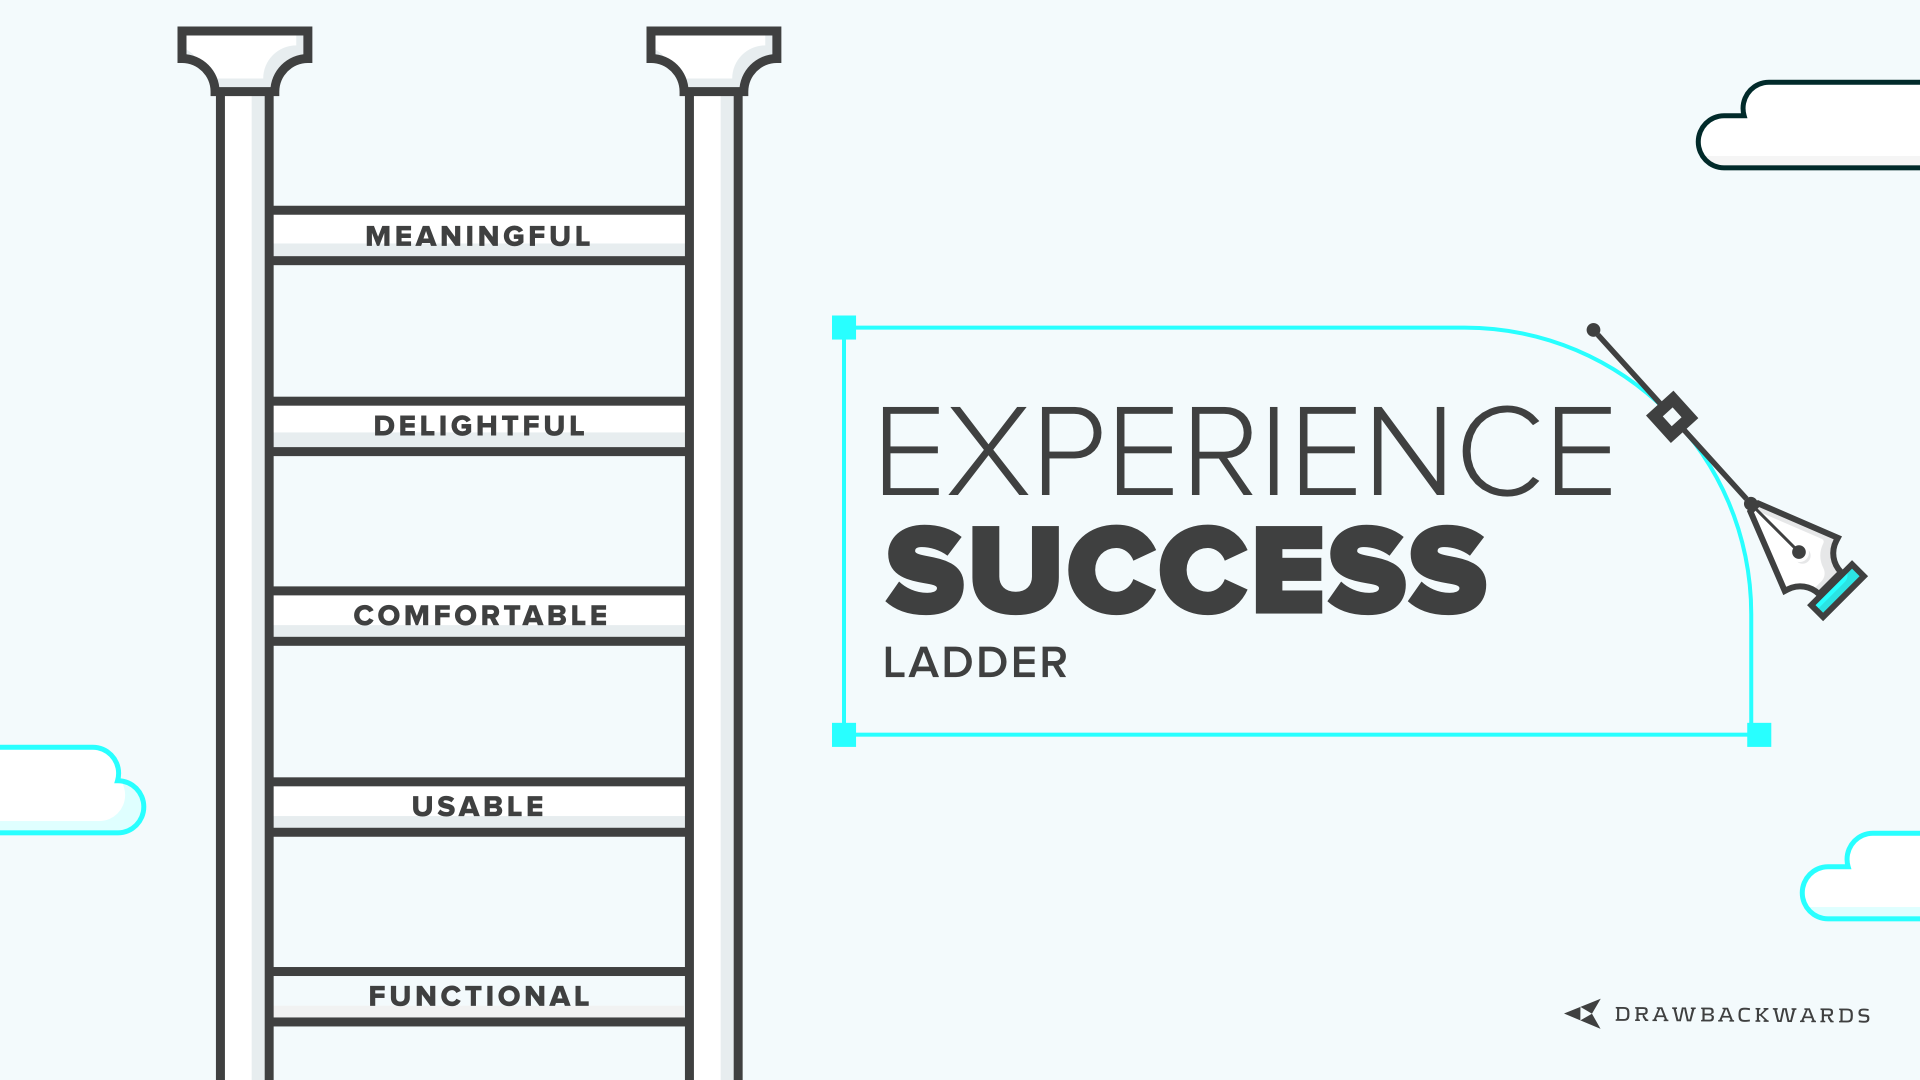 The Drawbackwards Experience Success Ladder